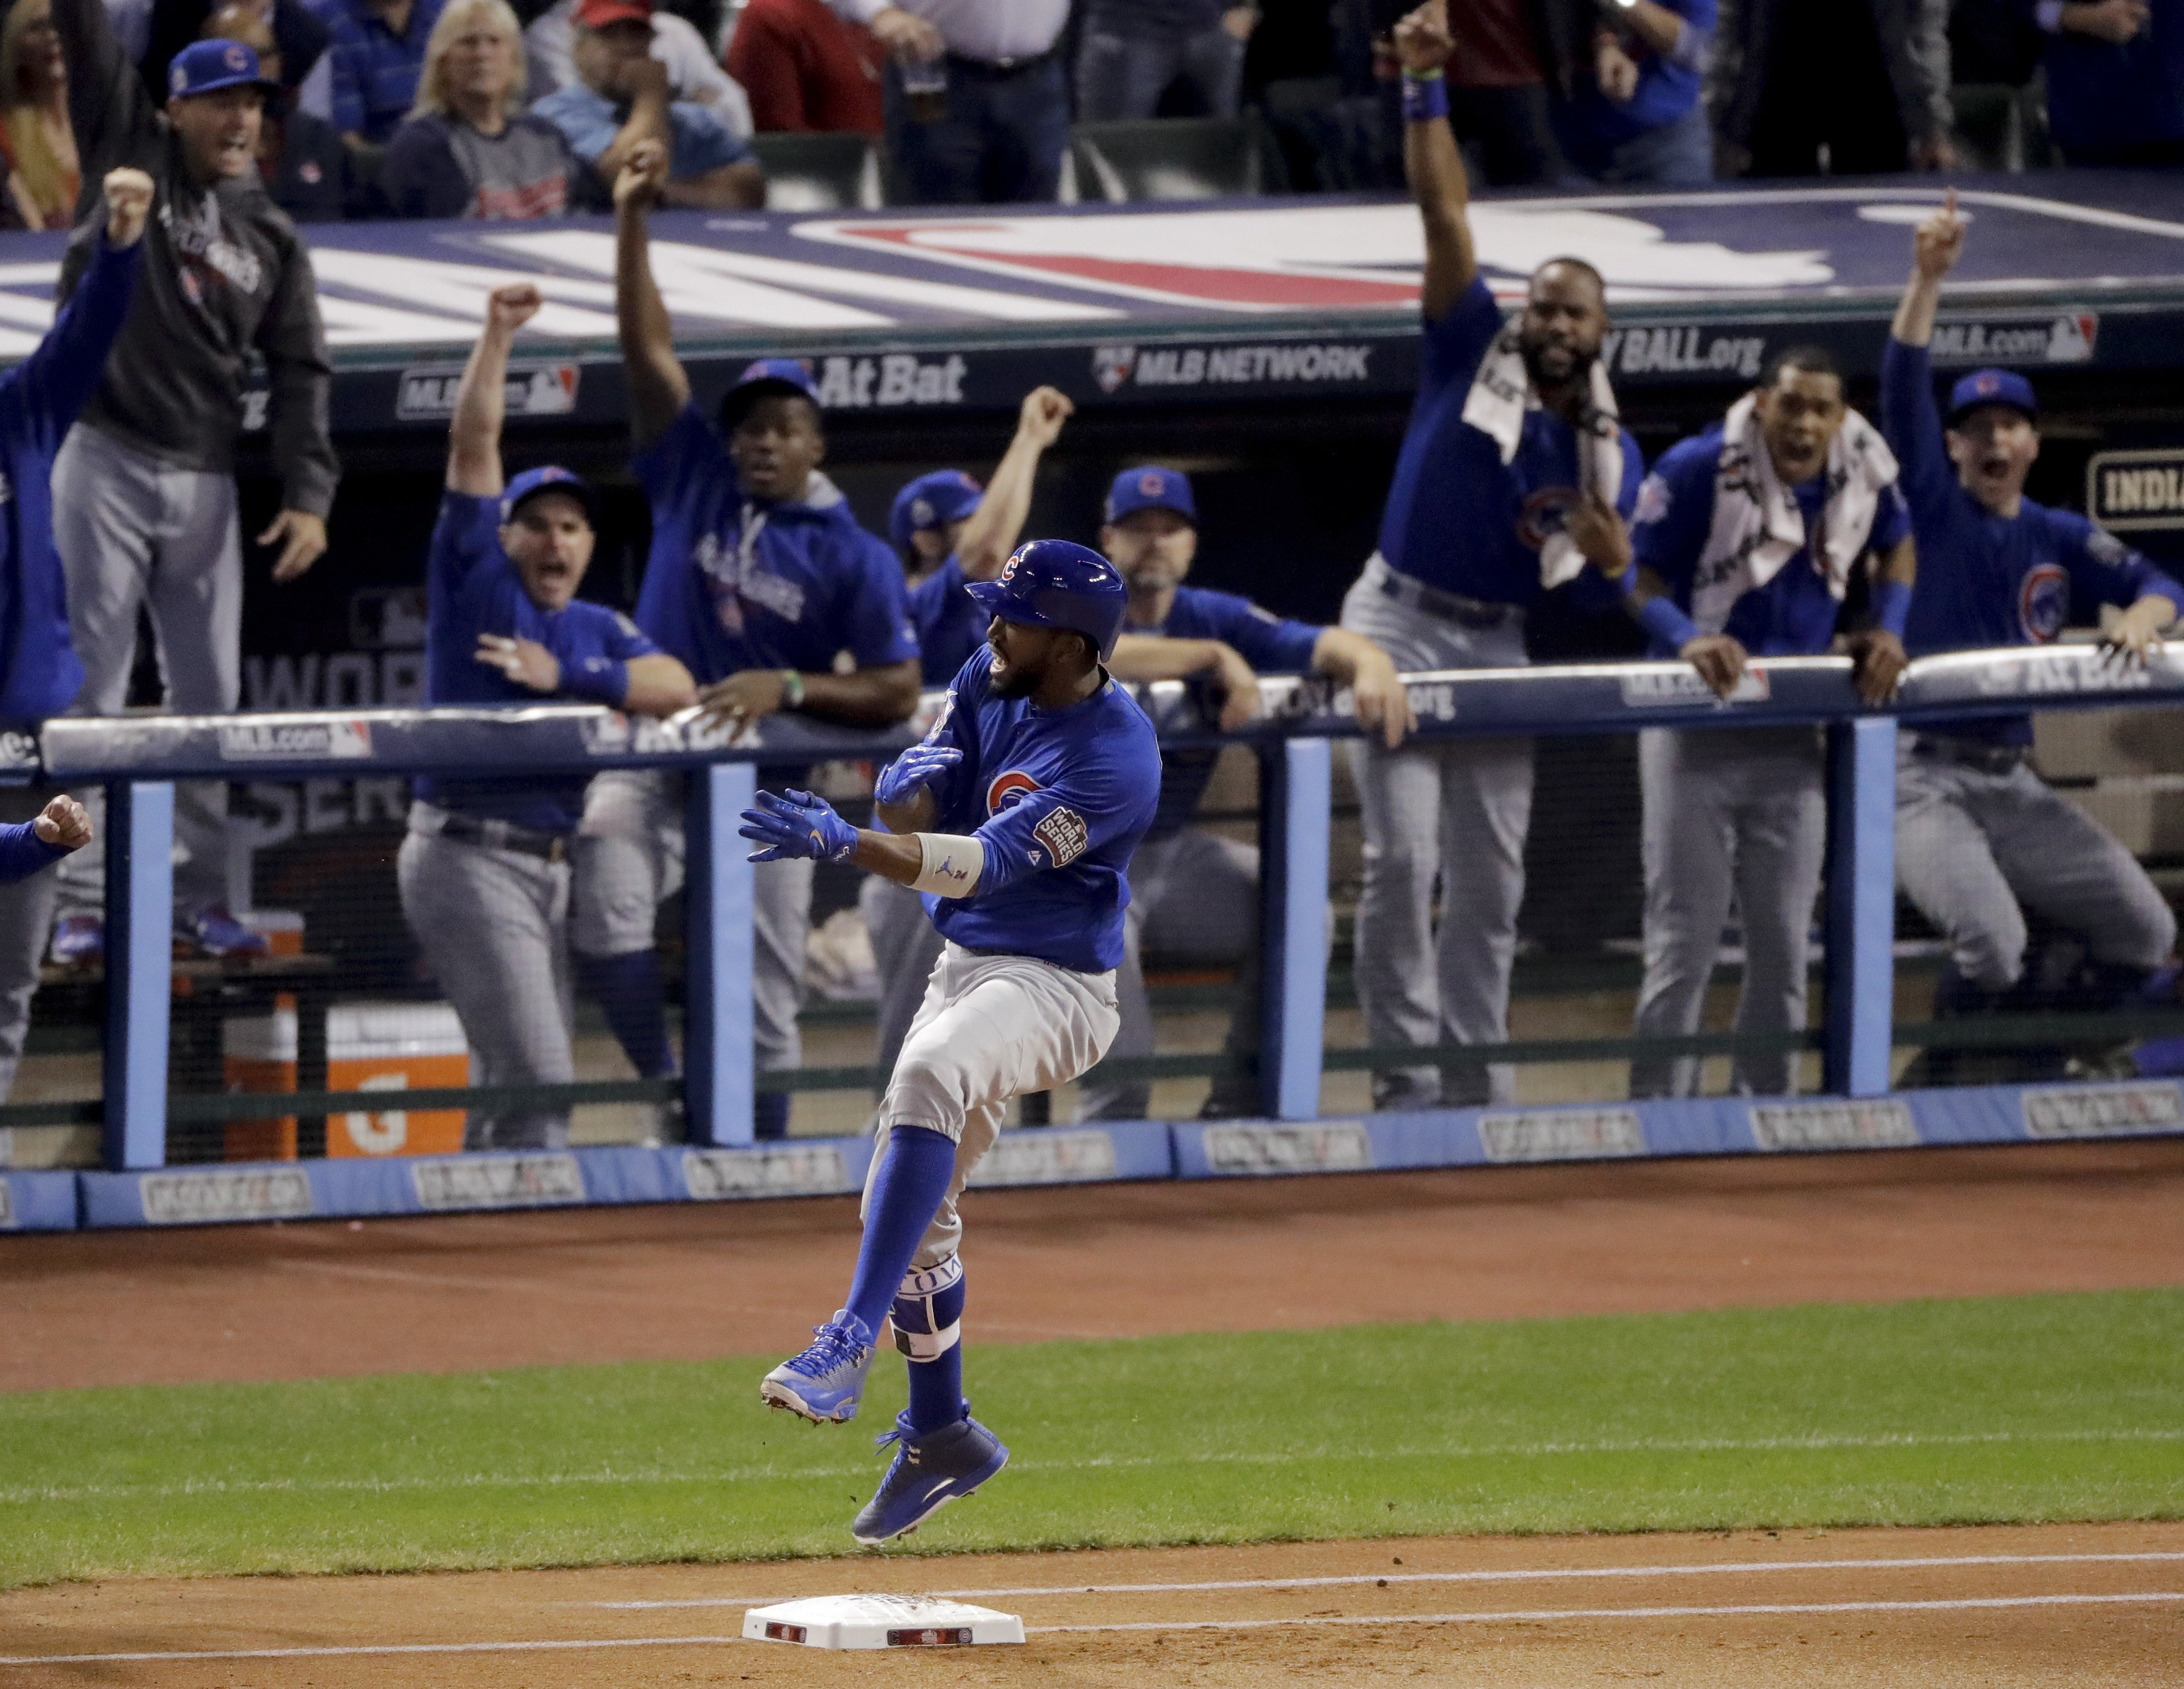 Chicago Cubs' Dexter Fowler celebrates after a leadoff home run against the Cleveland Indians during the first inning of Game 7 of the Major League Baseball World Series Wednesday, Nov. 2, 2016, in Cleveland.